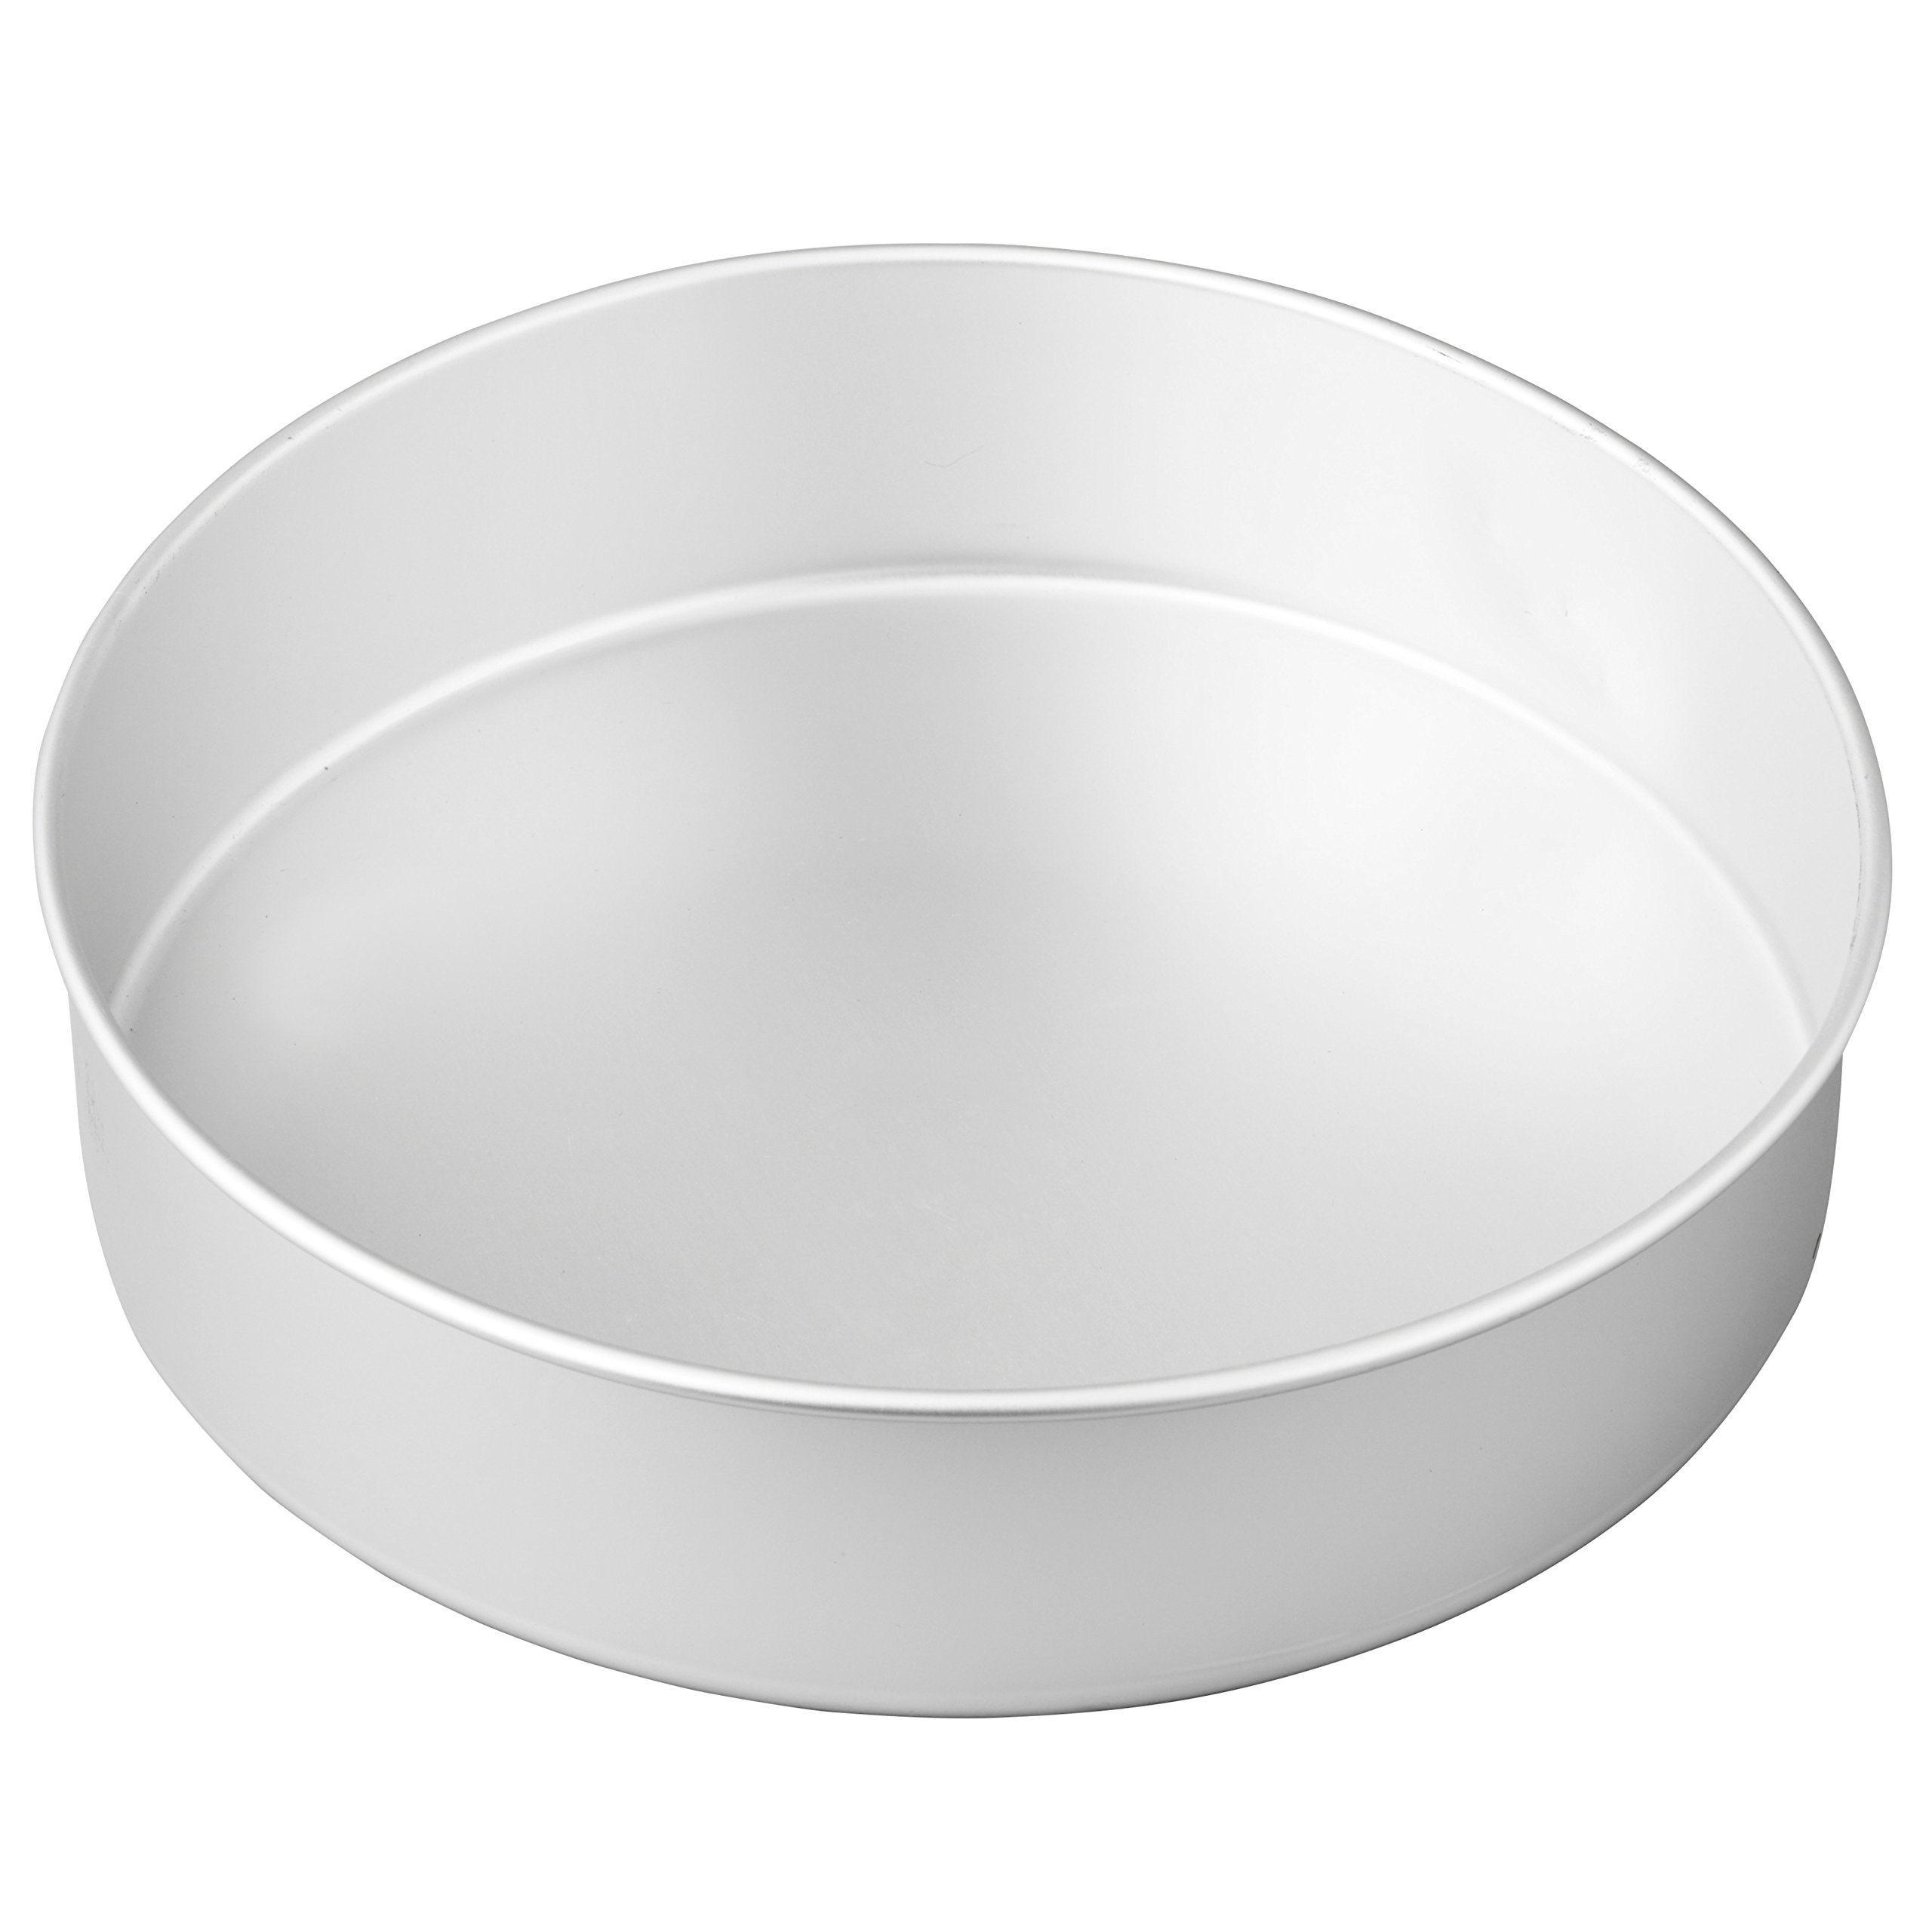 Wilton Round Cake Pan, Even-Heating for Great Baking Results, Aluminum, 3 inch x 12 inch by Wilton